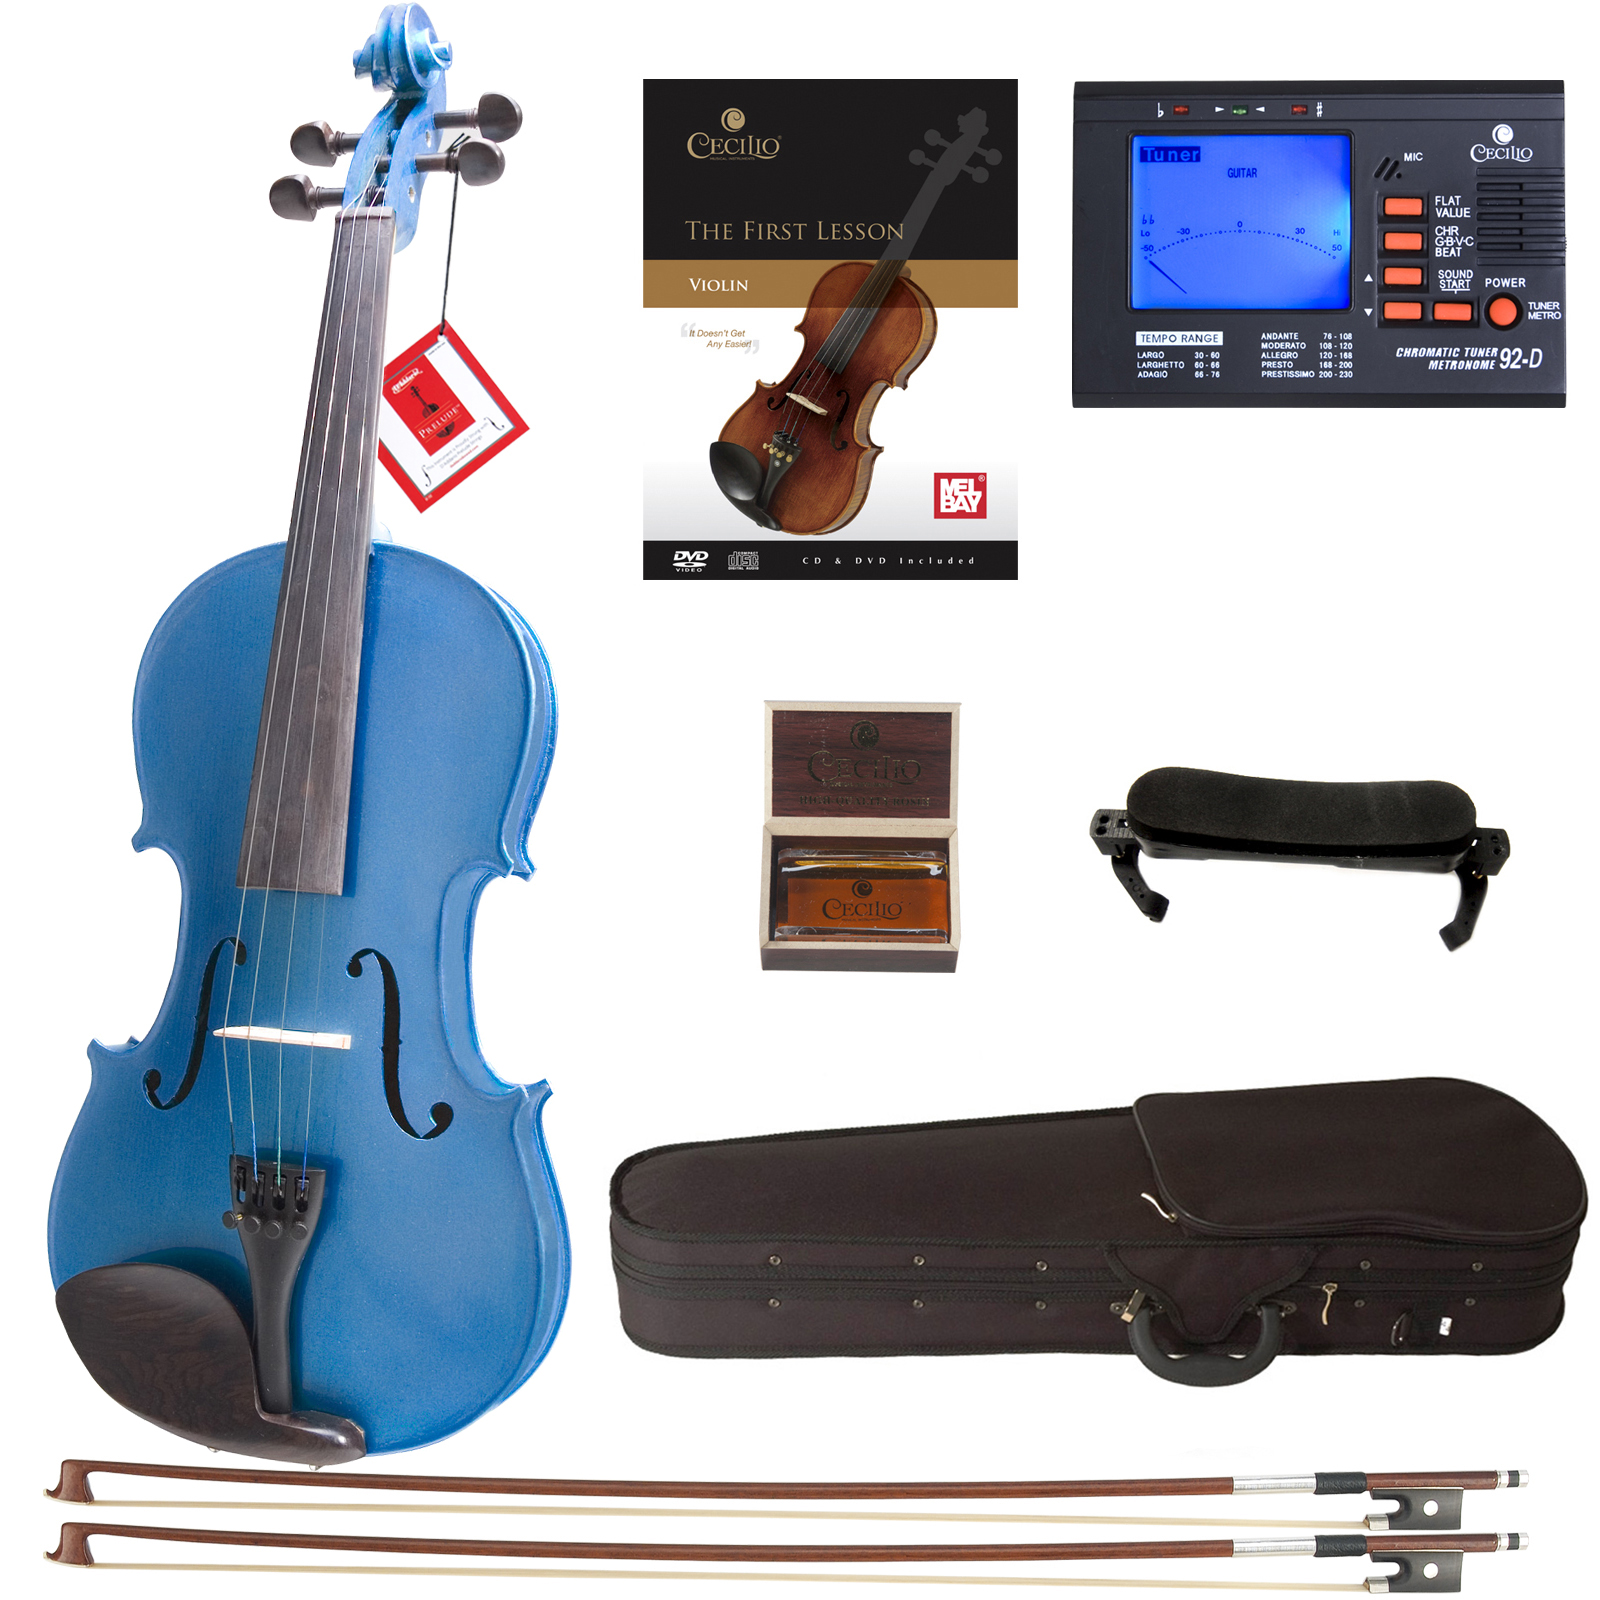 Cecilio Full Size Ebony Fitted Solid Wood Metallic Blue Violin w/D'Addario Prelude Strings, Lesson Book, Shoulder Rest and More 4/4CVN-Blue